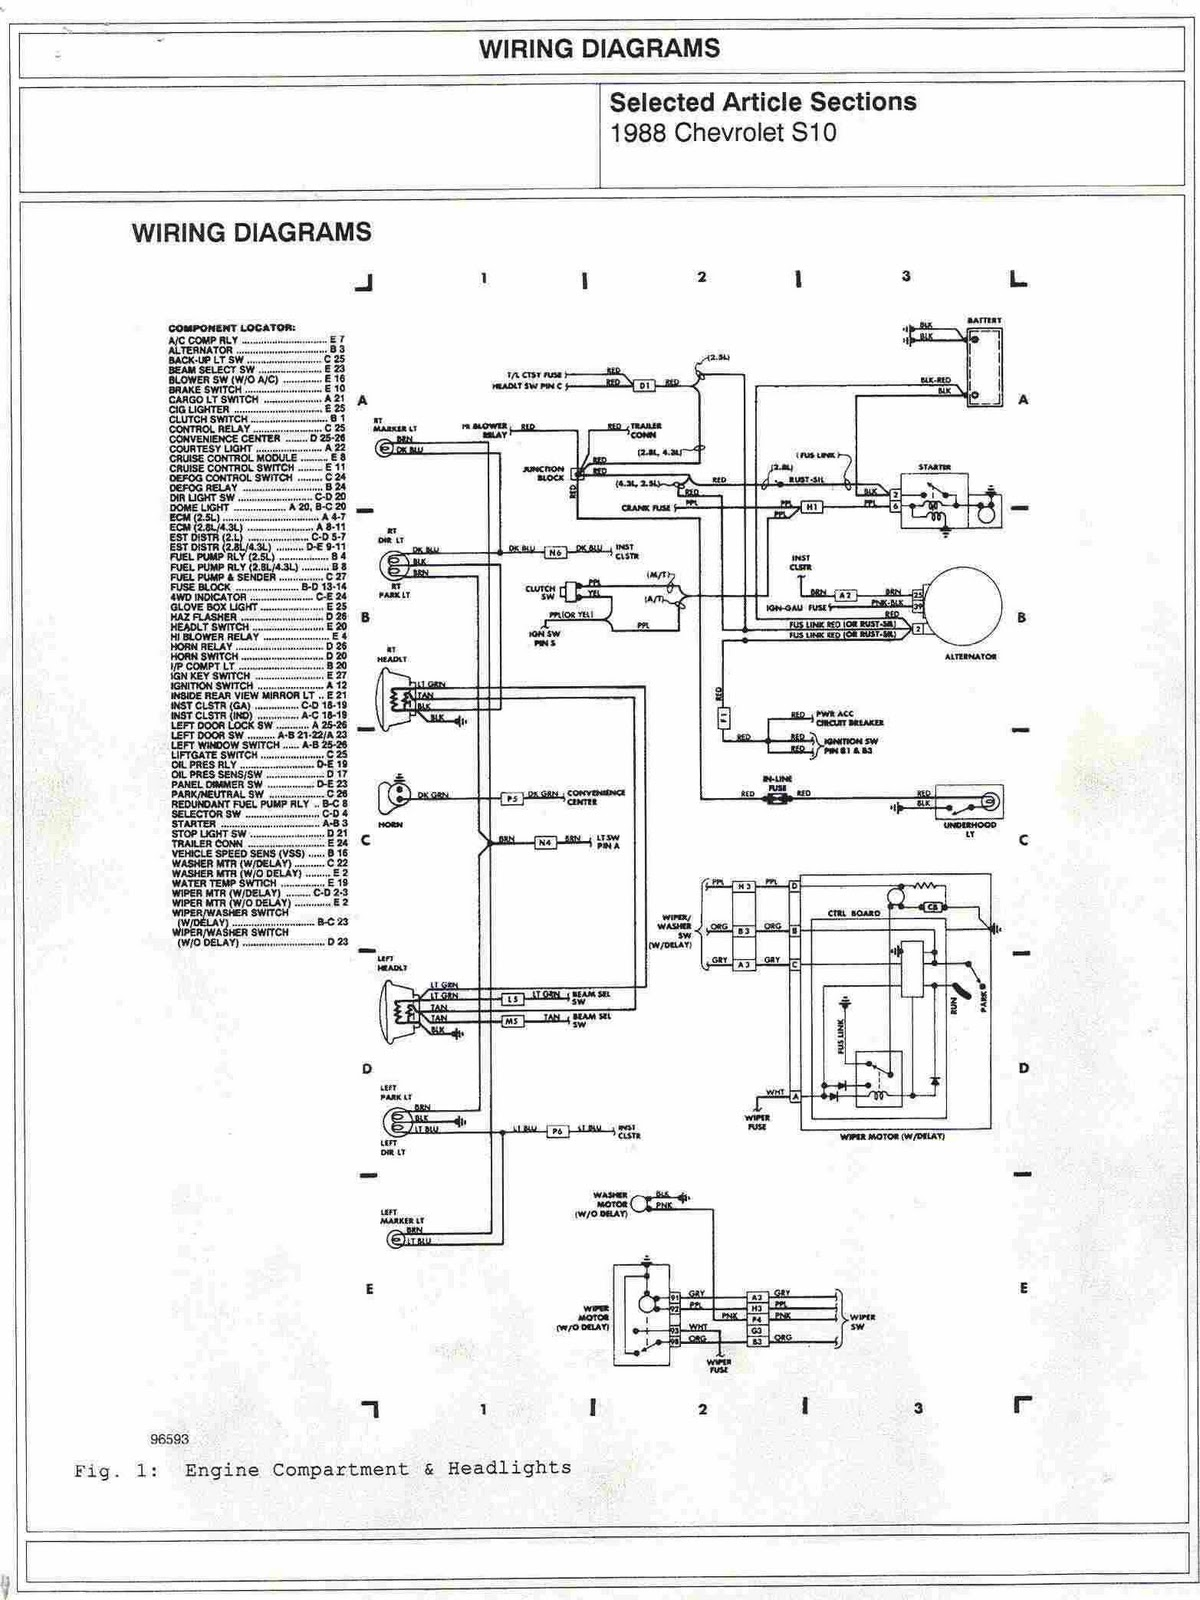 97 S10 Headlight Wiring Diagram 31 Images Cavalier Ignition Switch Diagrams 1988 Chevrolet Engine Compartment And Headlights